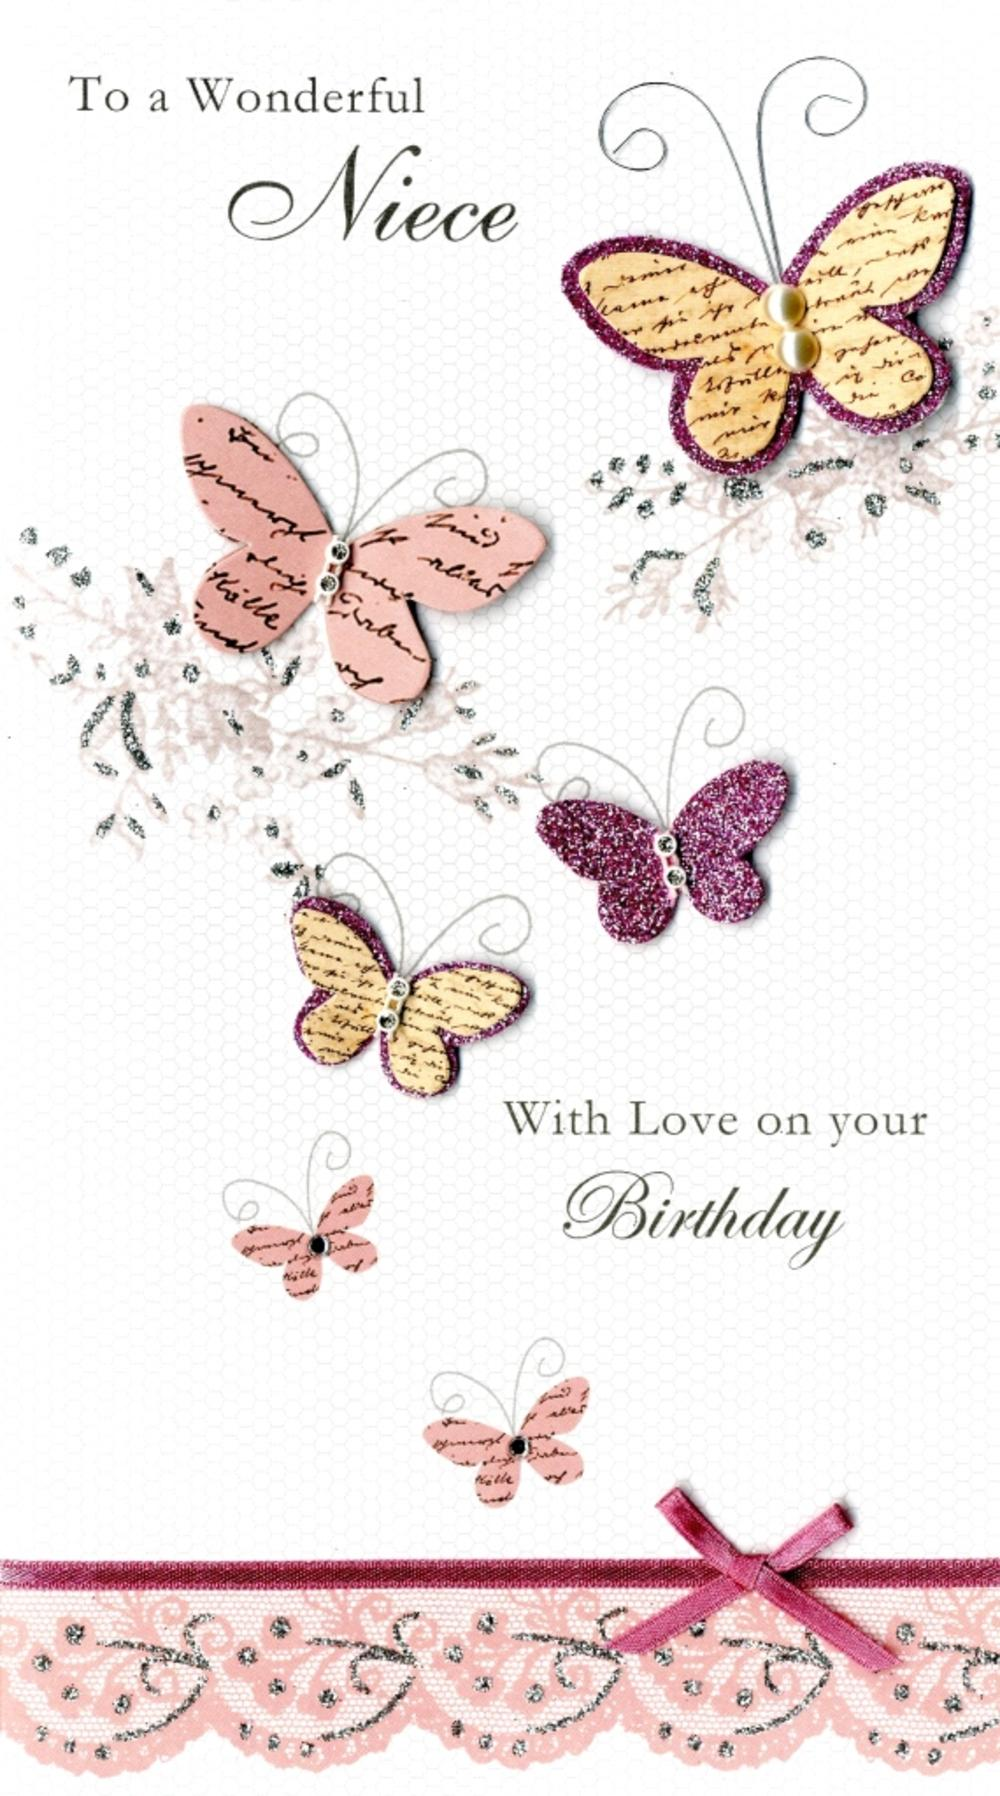 Wonderful Niece Happy Birthday Greeting Card